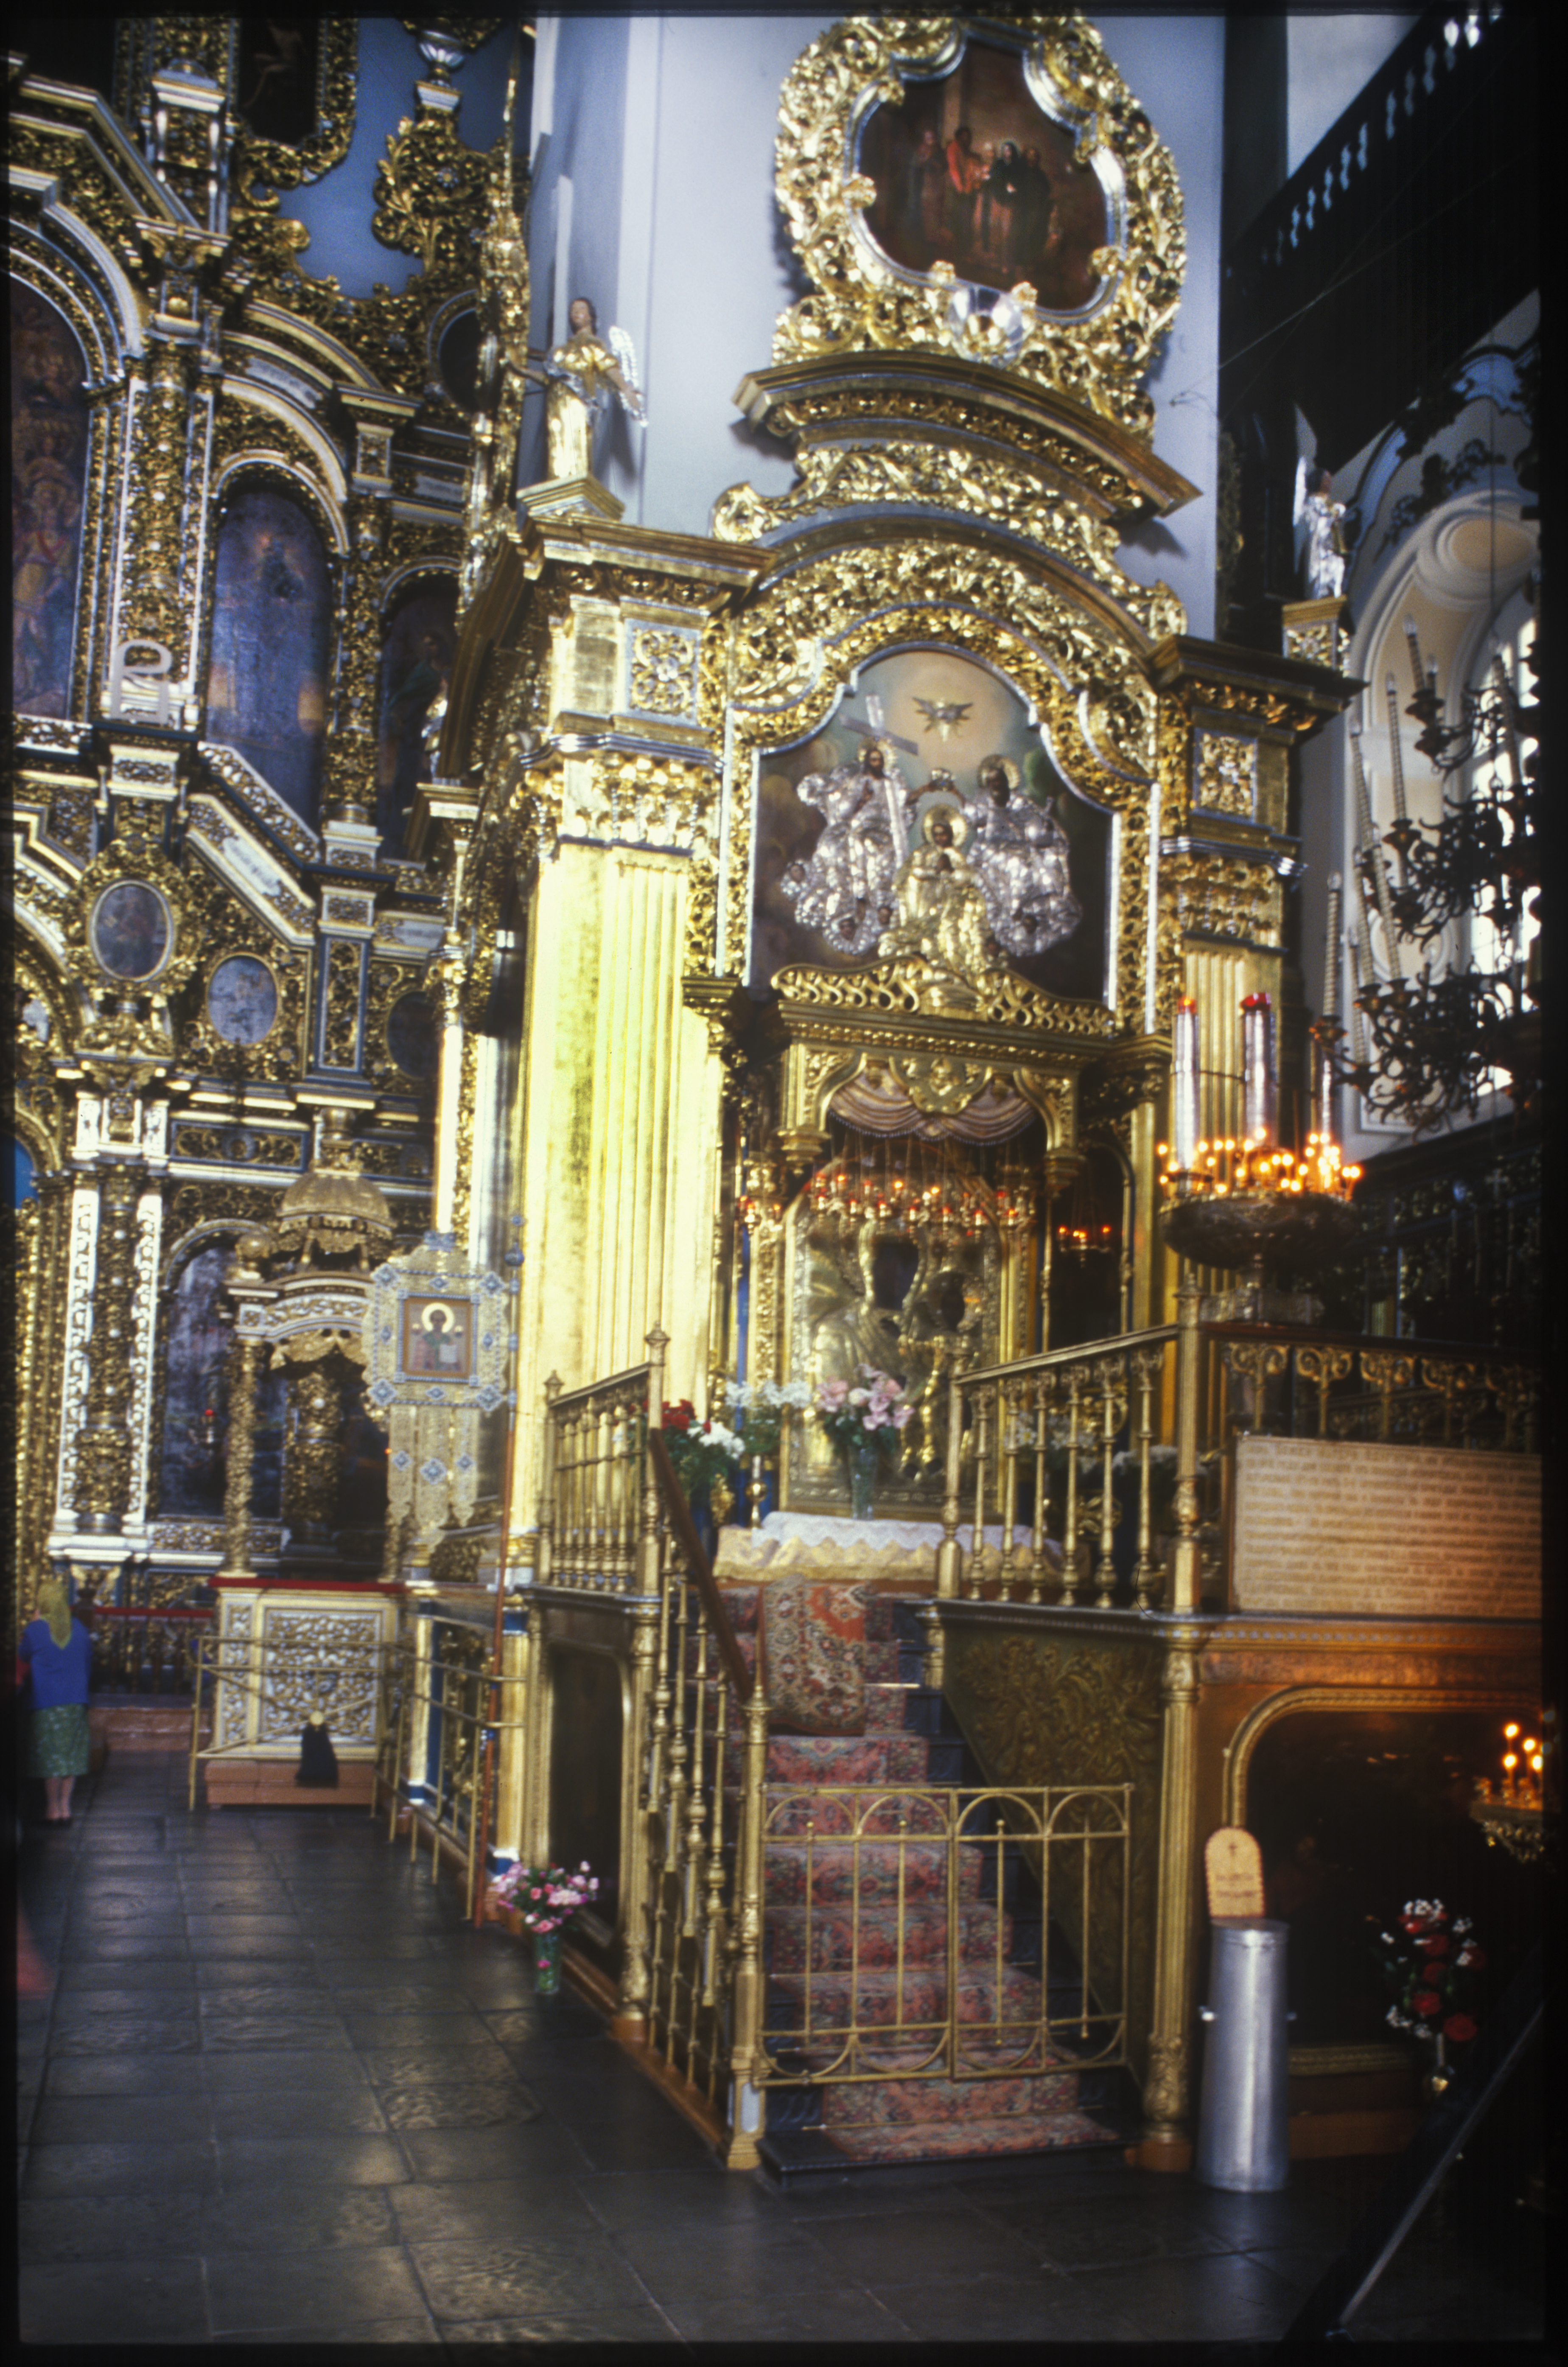 Dormition Cathedral, interior, view of baldachin with copy of Smolensk Icon. July 15, 2006. / Photo: William Brumfield